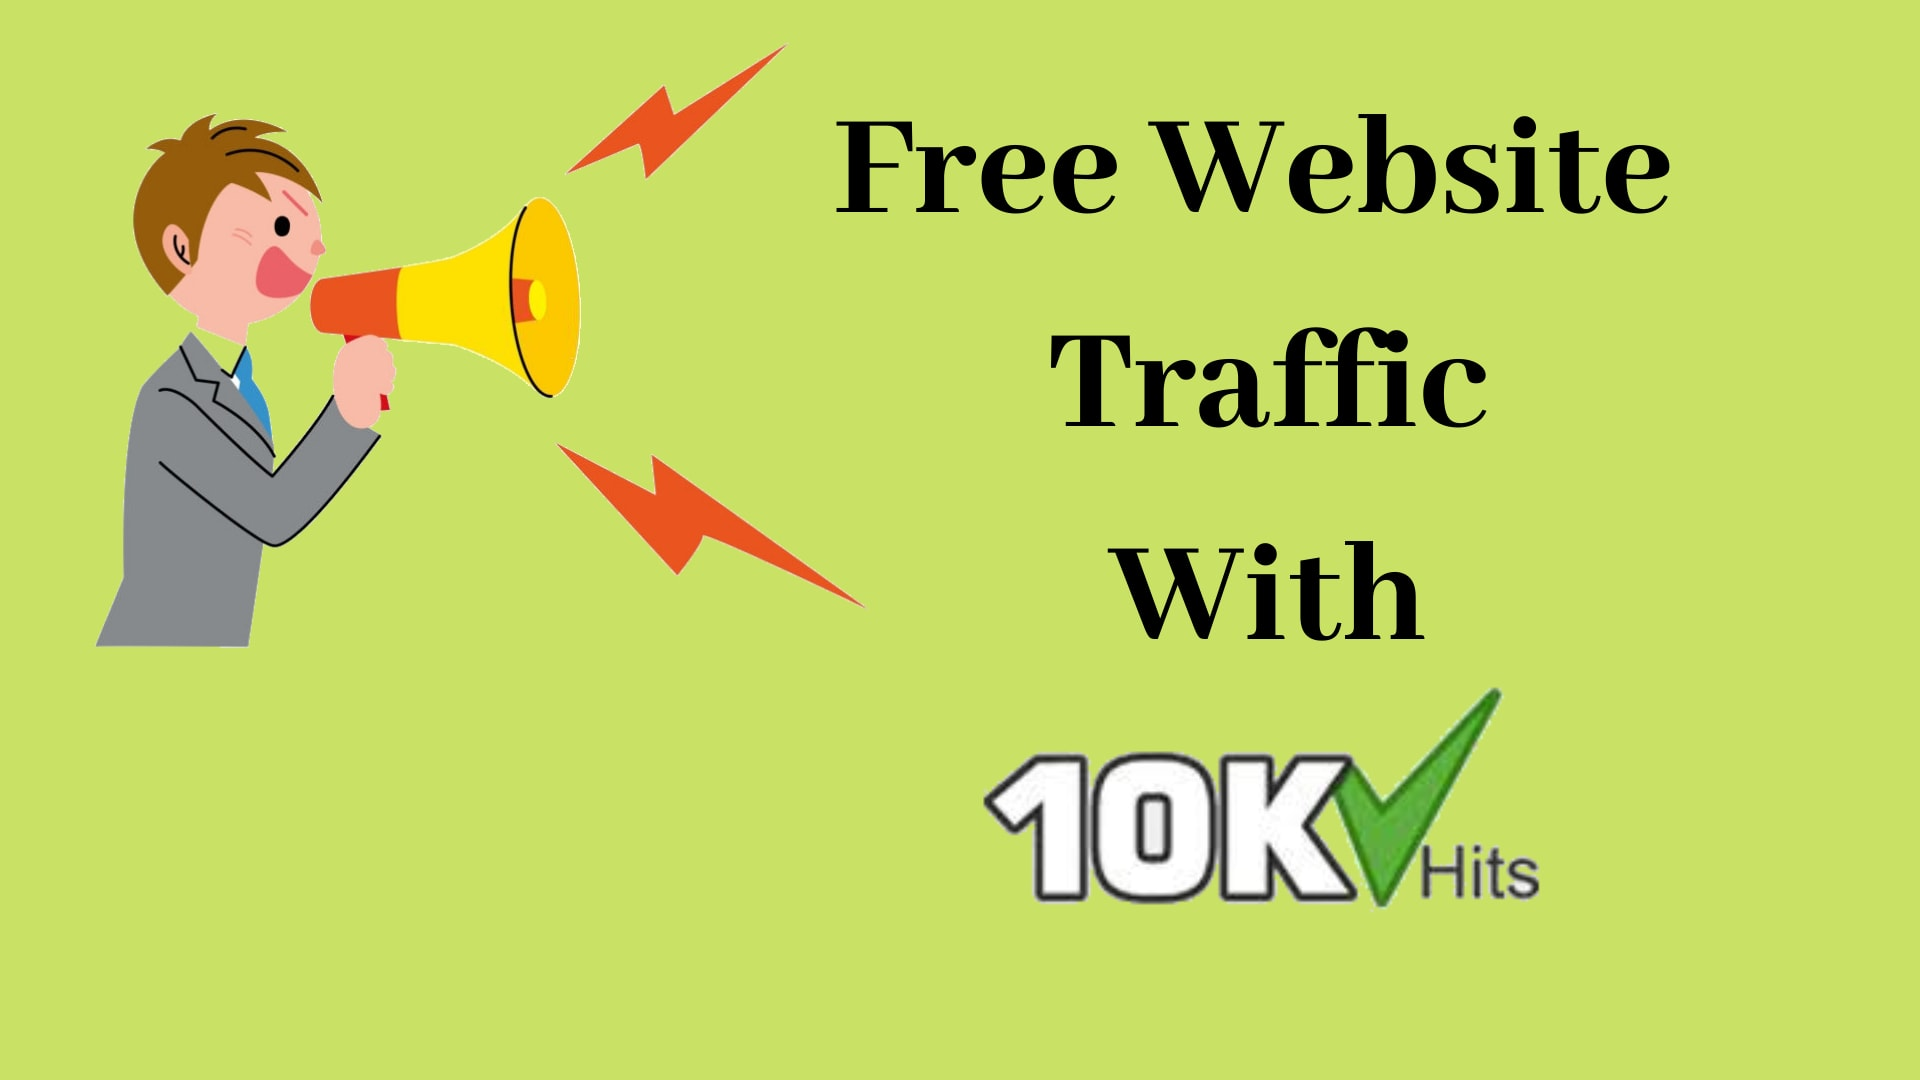 10khits - Free Website Traffic with 10khits 2020